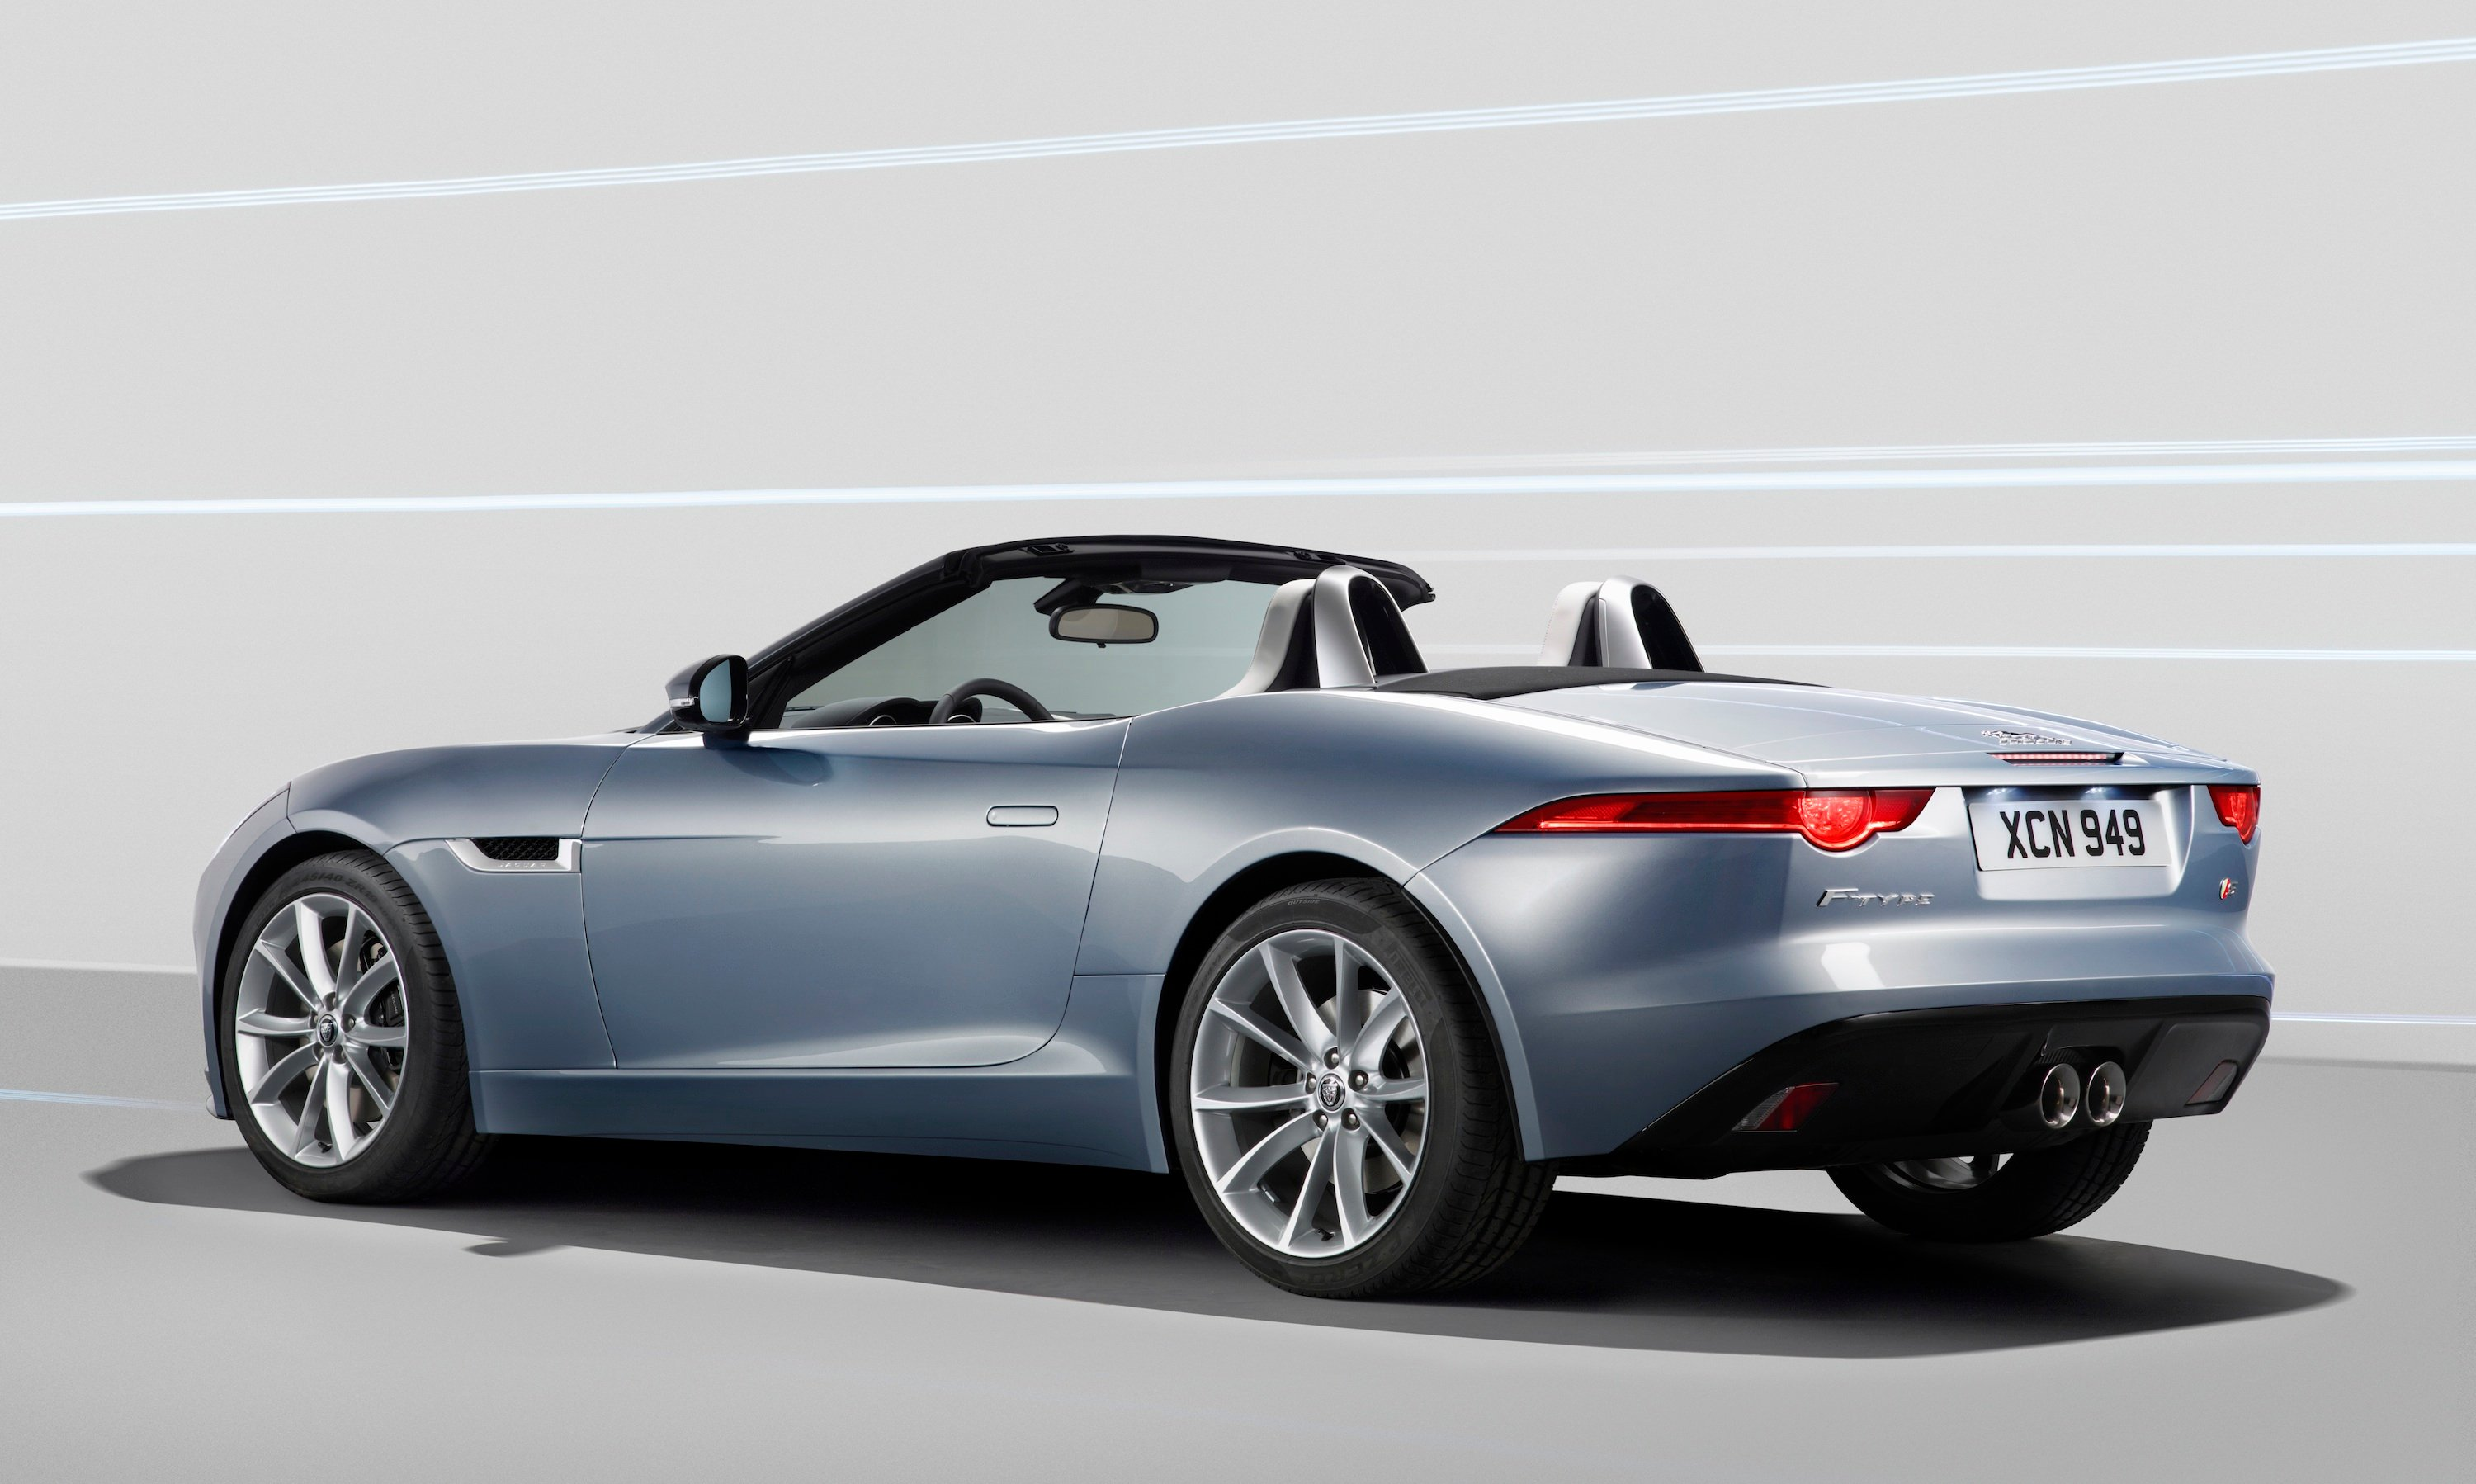 Great Jaguar F Type Our First Real Sports Car For 50 Years, Says British Brand